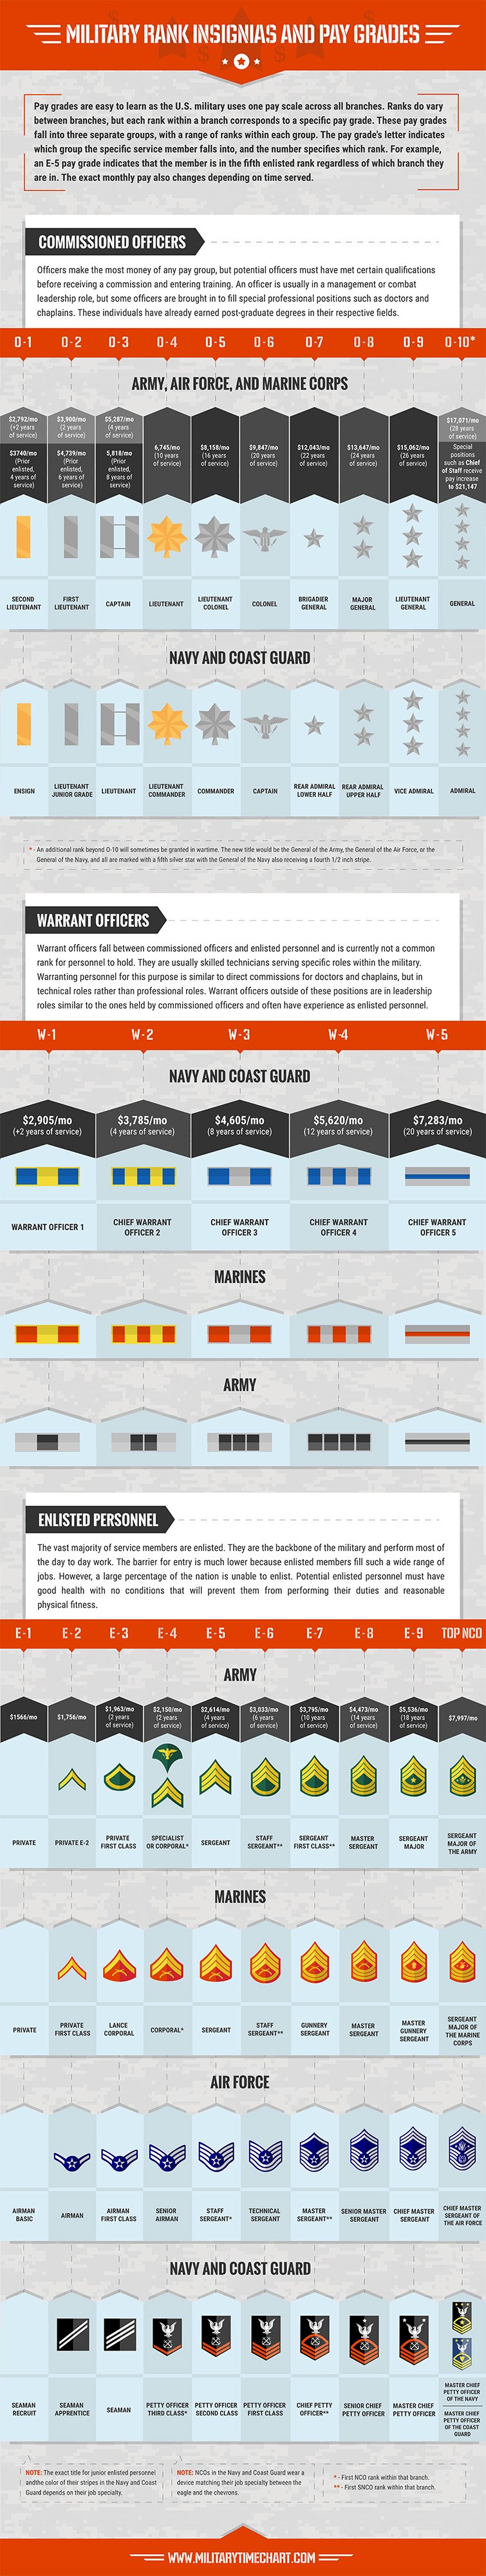 Military Pay Chart and Rank Insignia (Pay Scales)